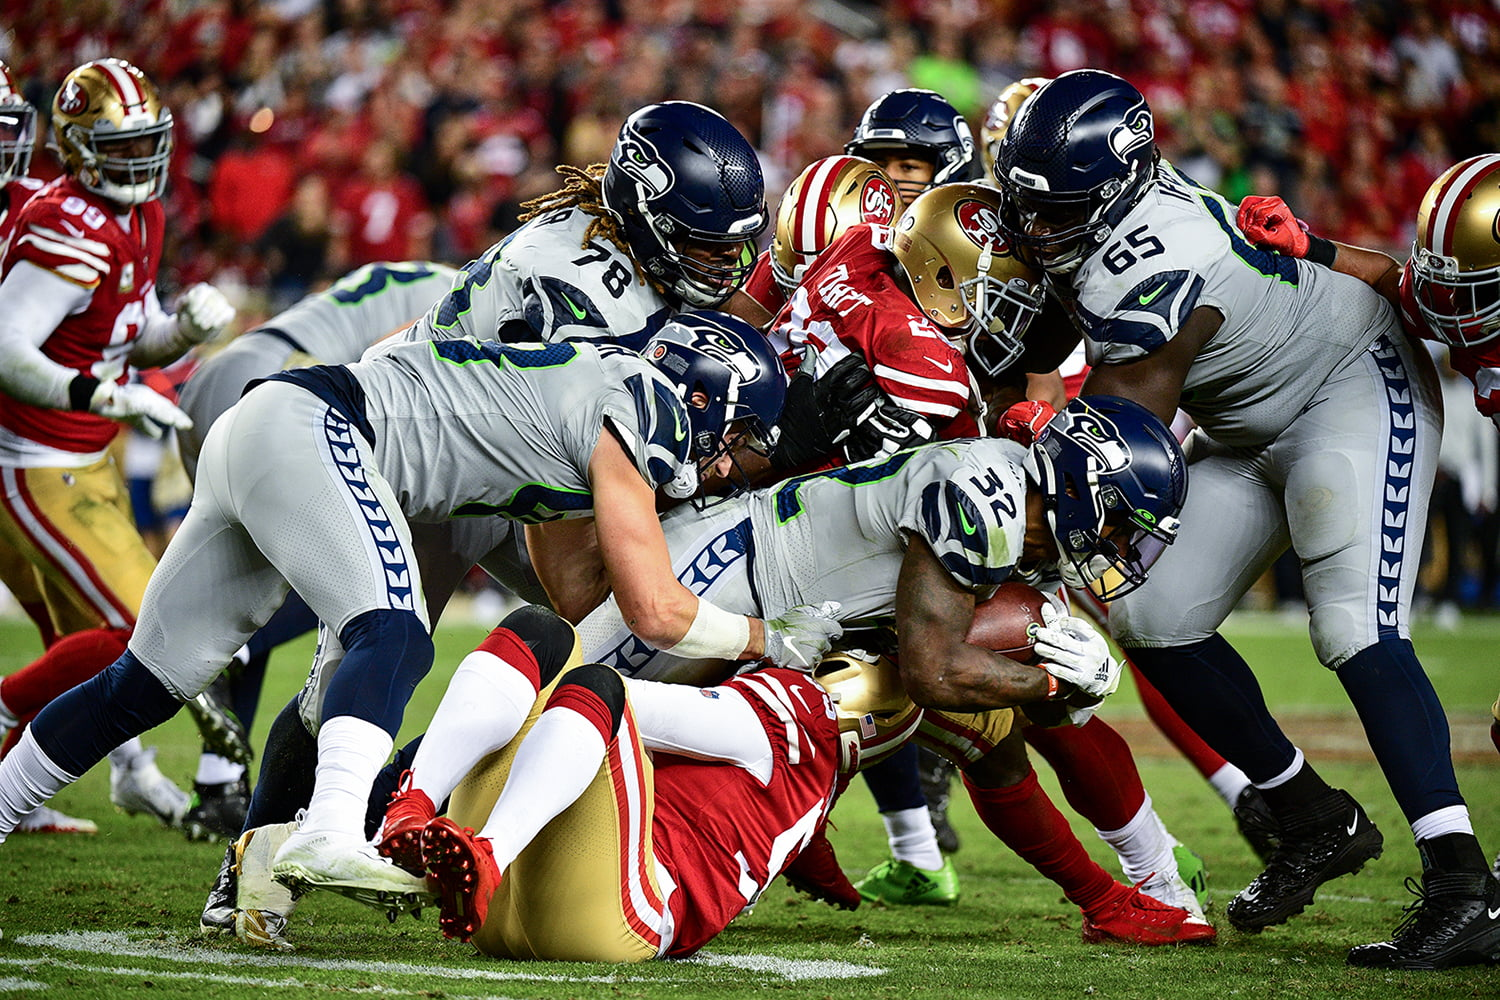 Seahawks 49ers Ratings Strong On Espn Sports Media Watch